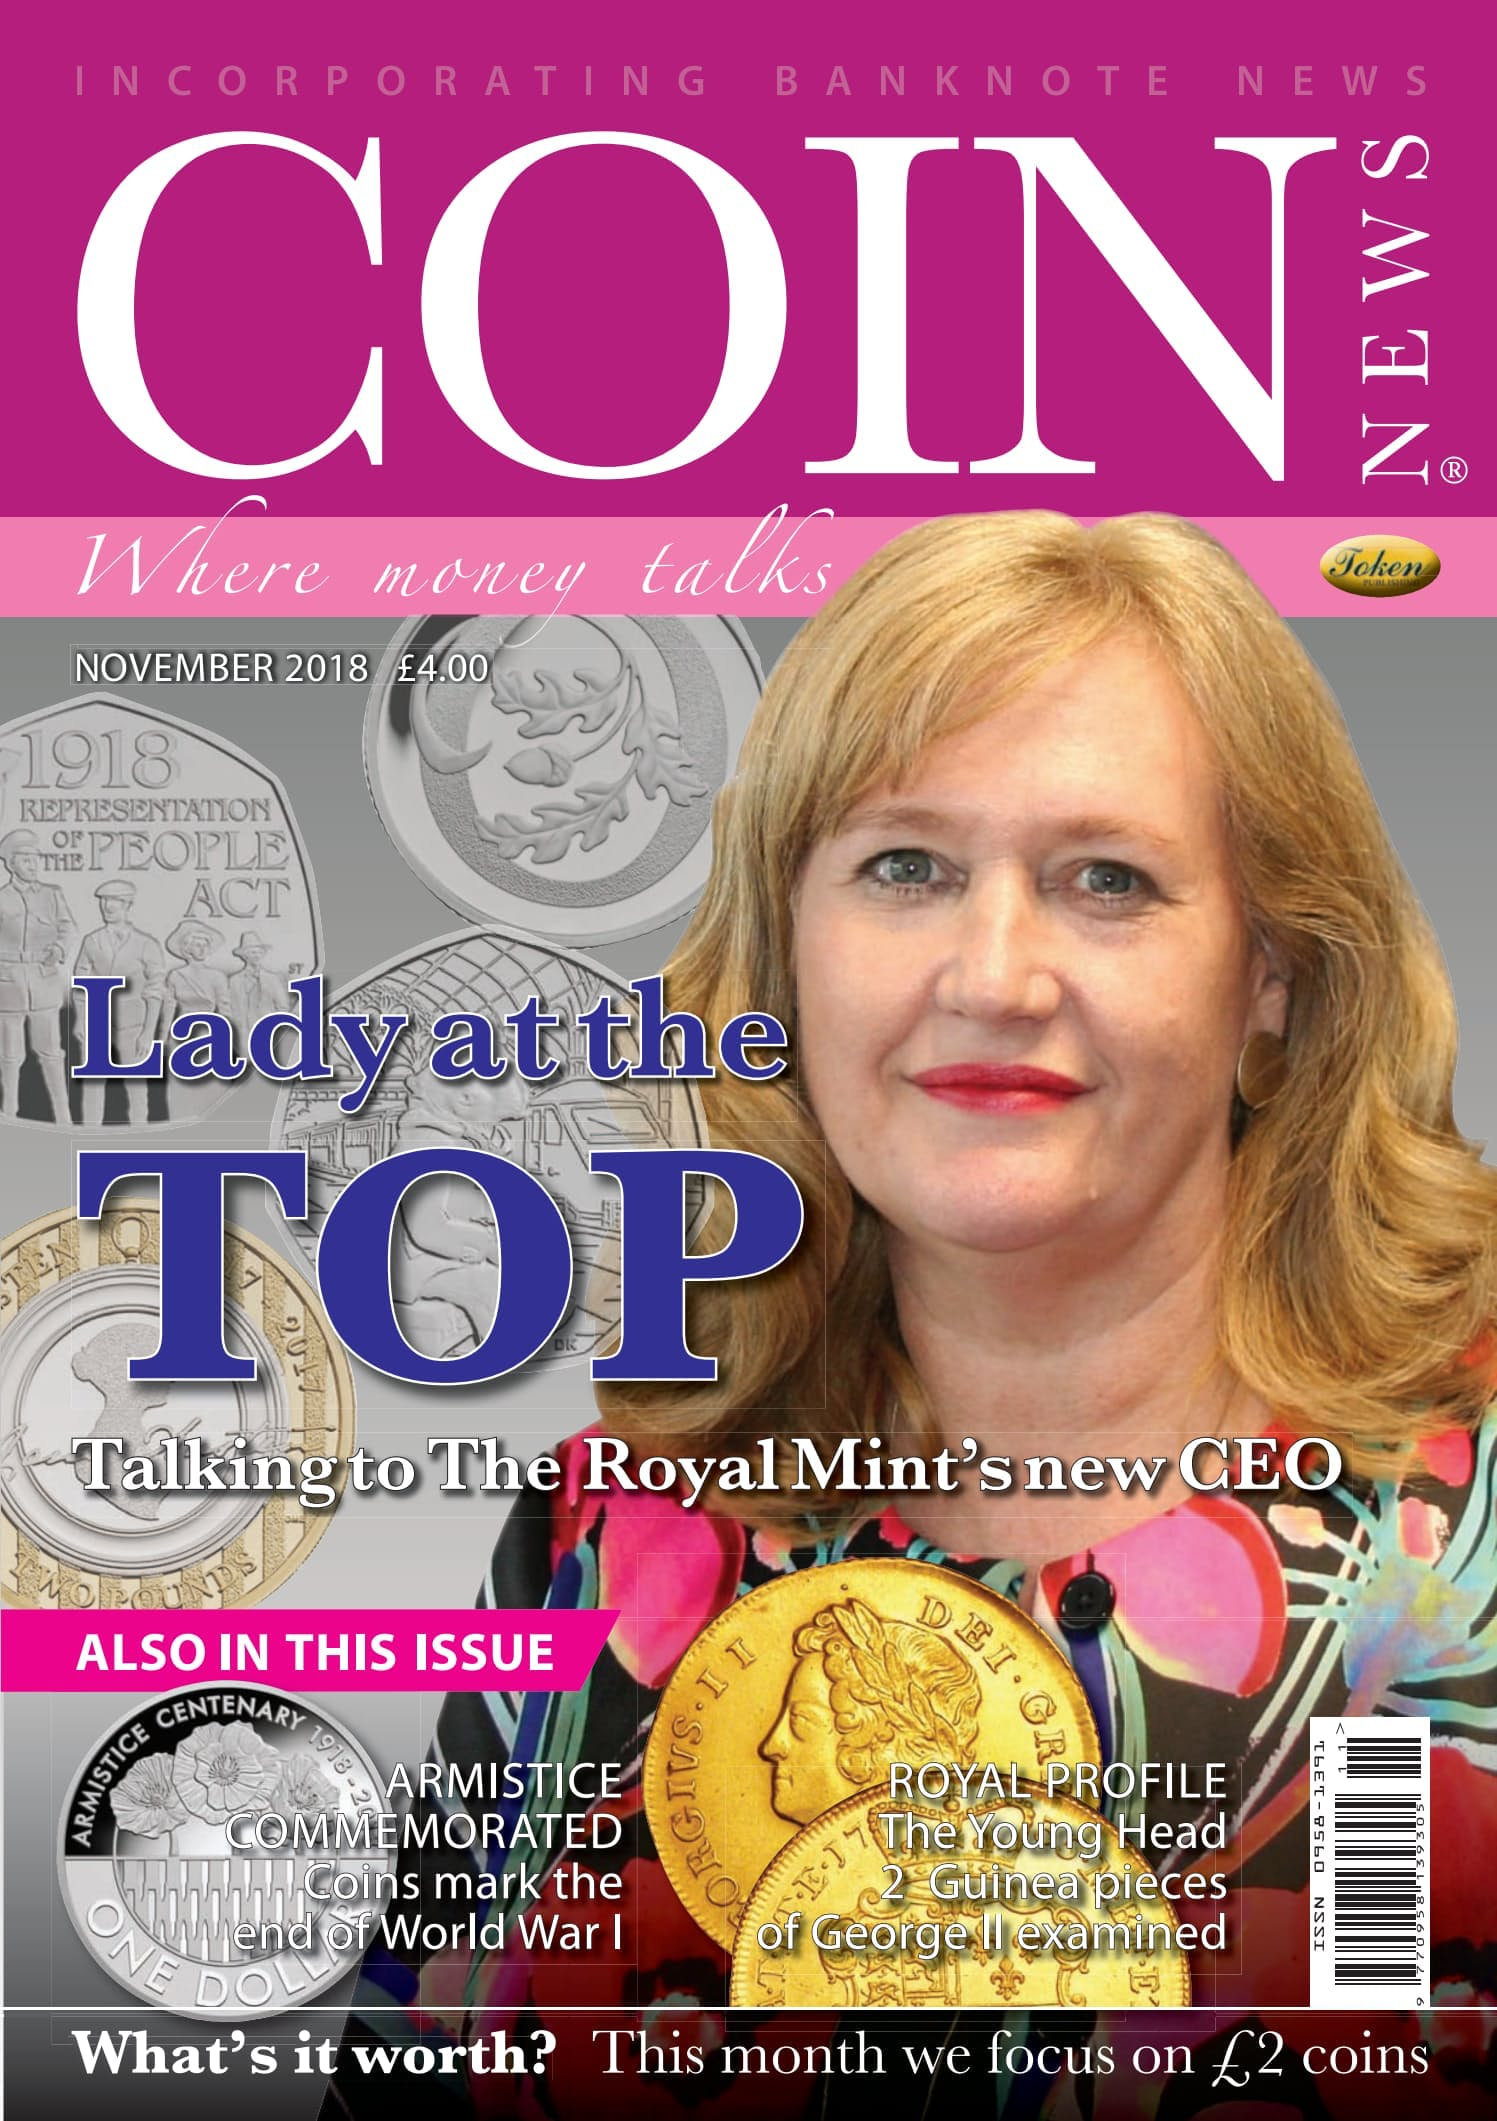 The front cover of Coin News, November 2018 - Volume 55, Number 11